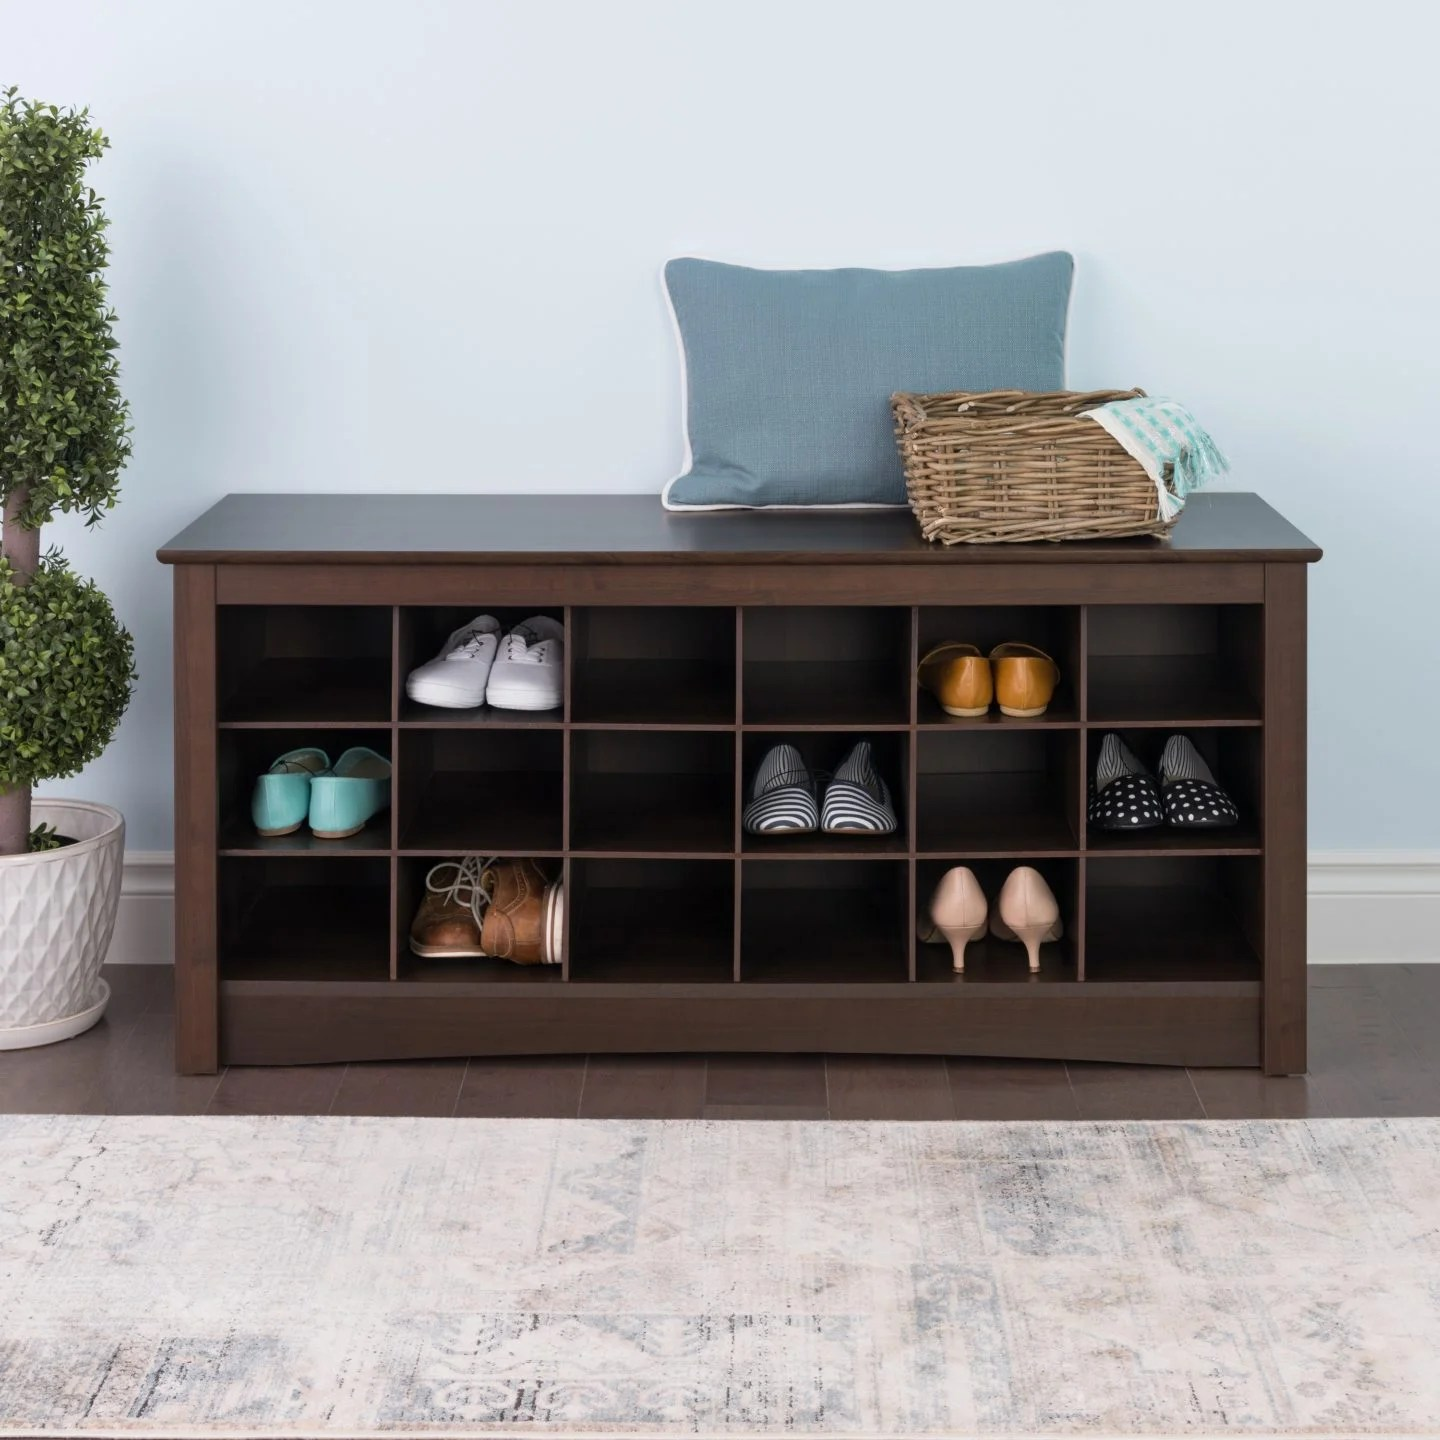 4 Types Of Shoe Storage Solutions For Your Home Overstock Com